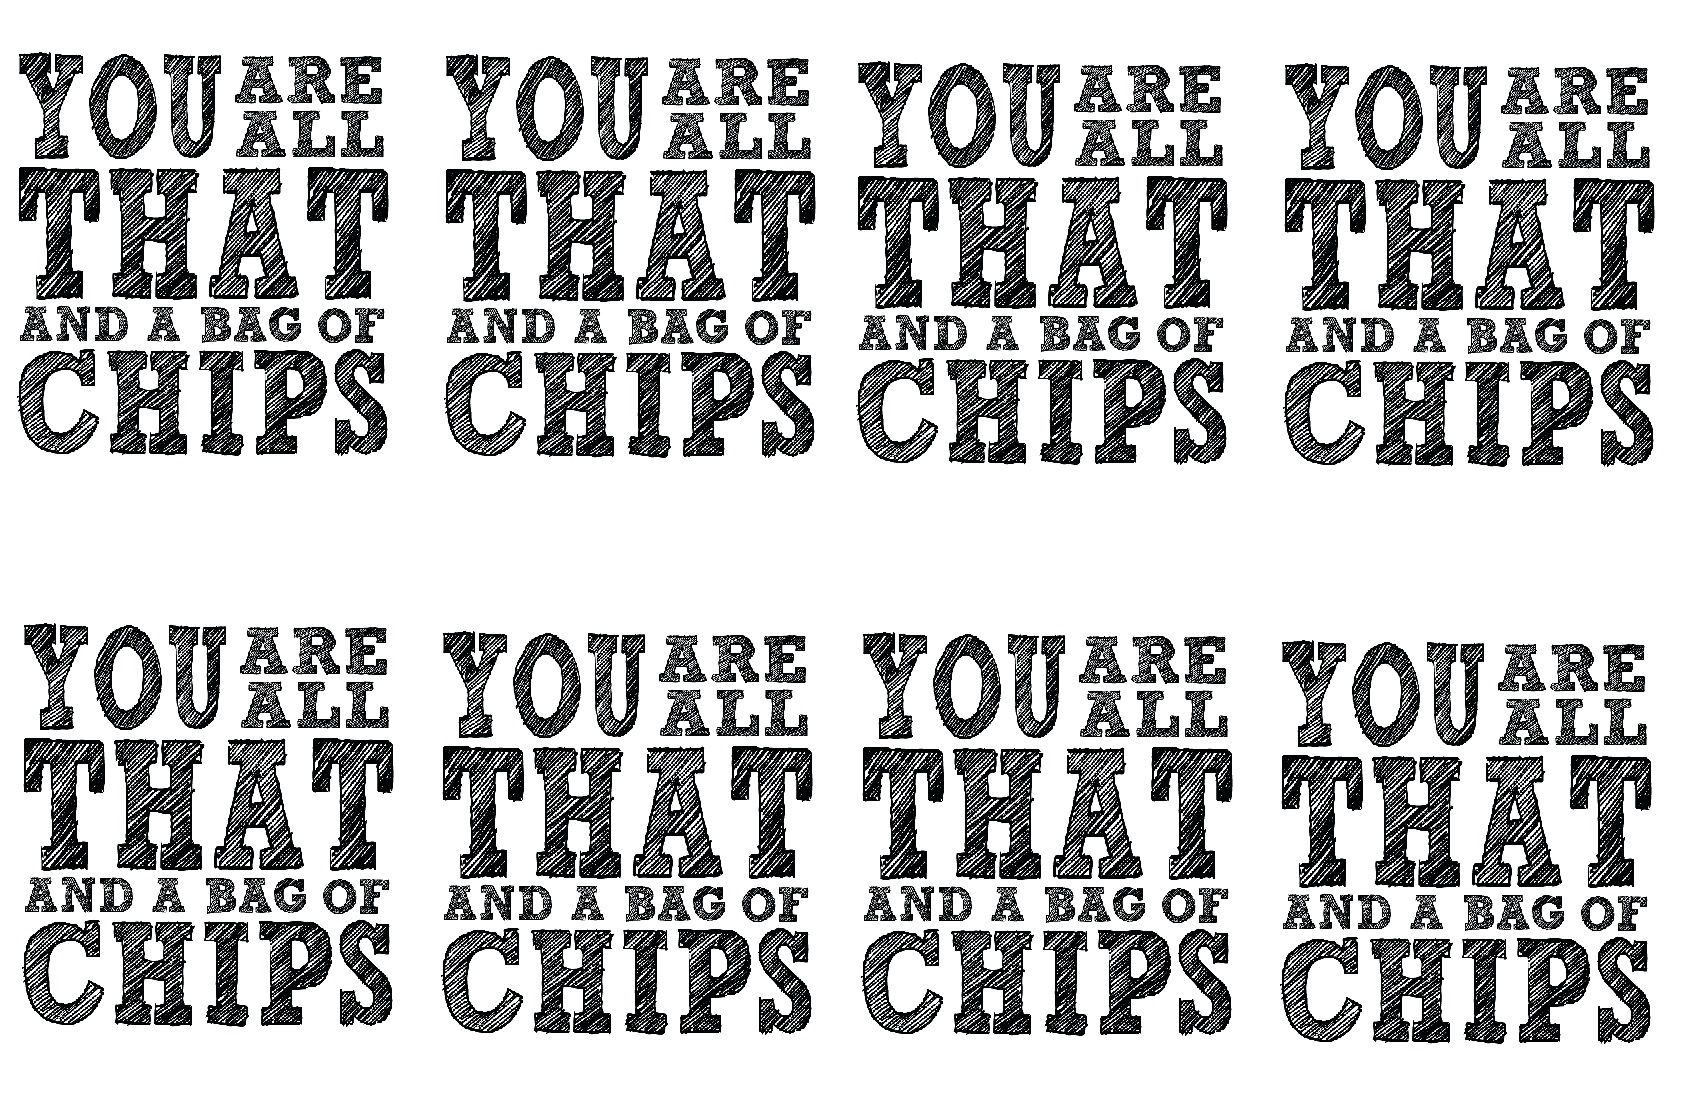 photograph about You're All That and a Bag of Chips Printable called All That and a bag of chips - Chip bag present tag. Foolish